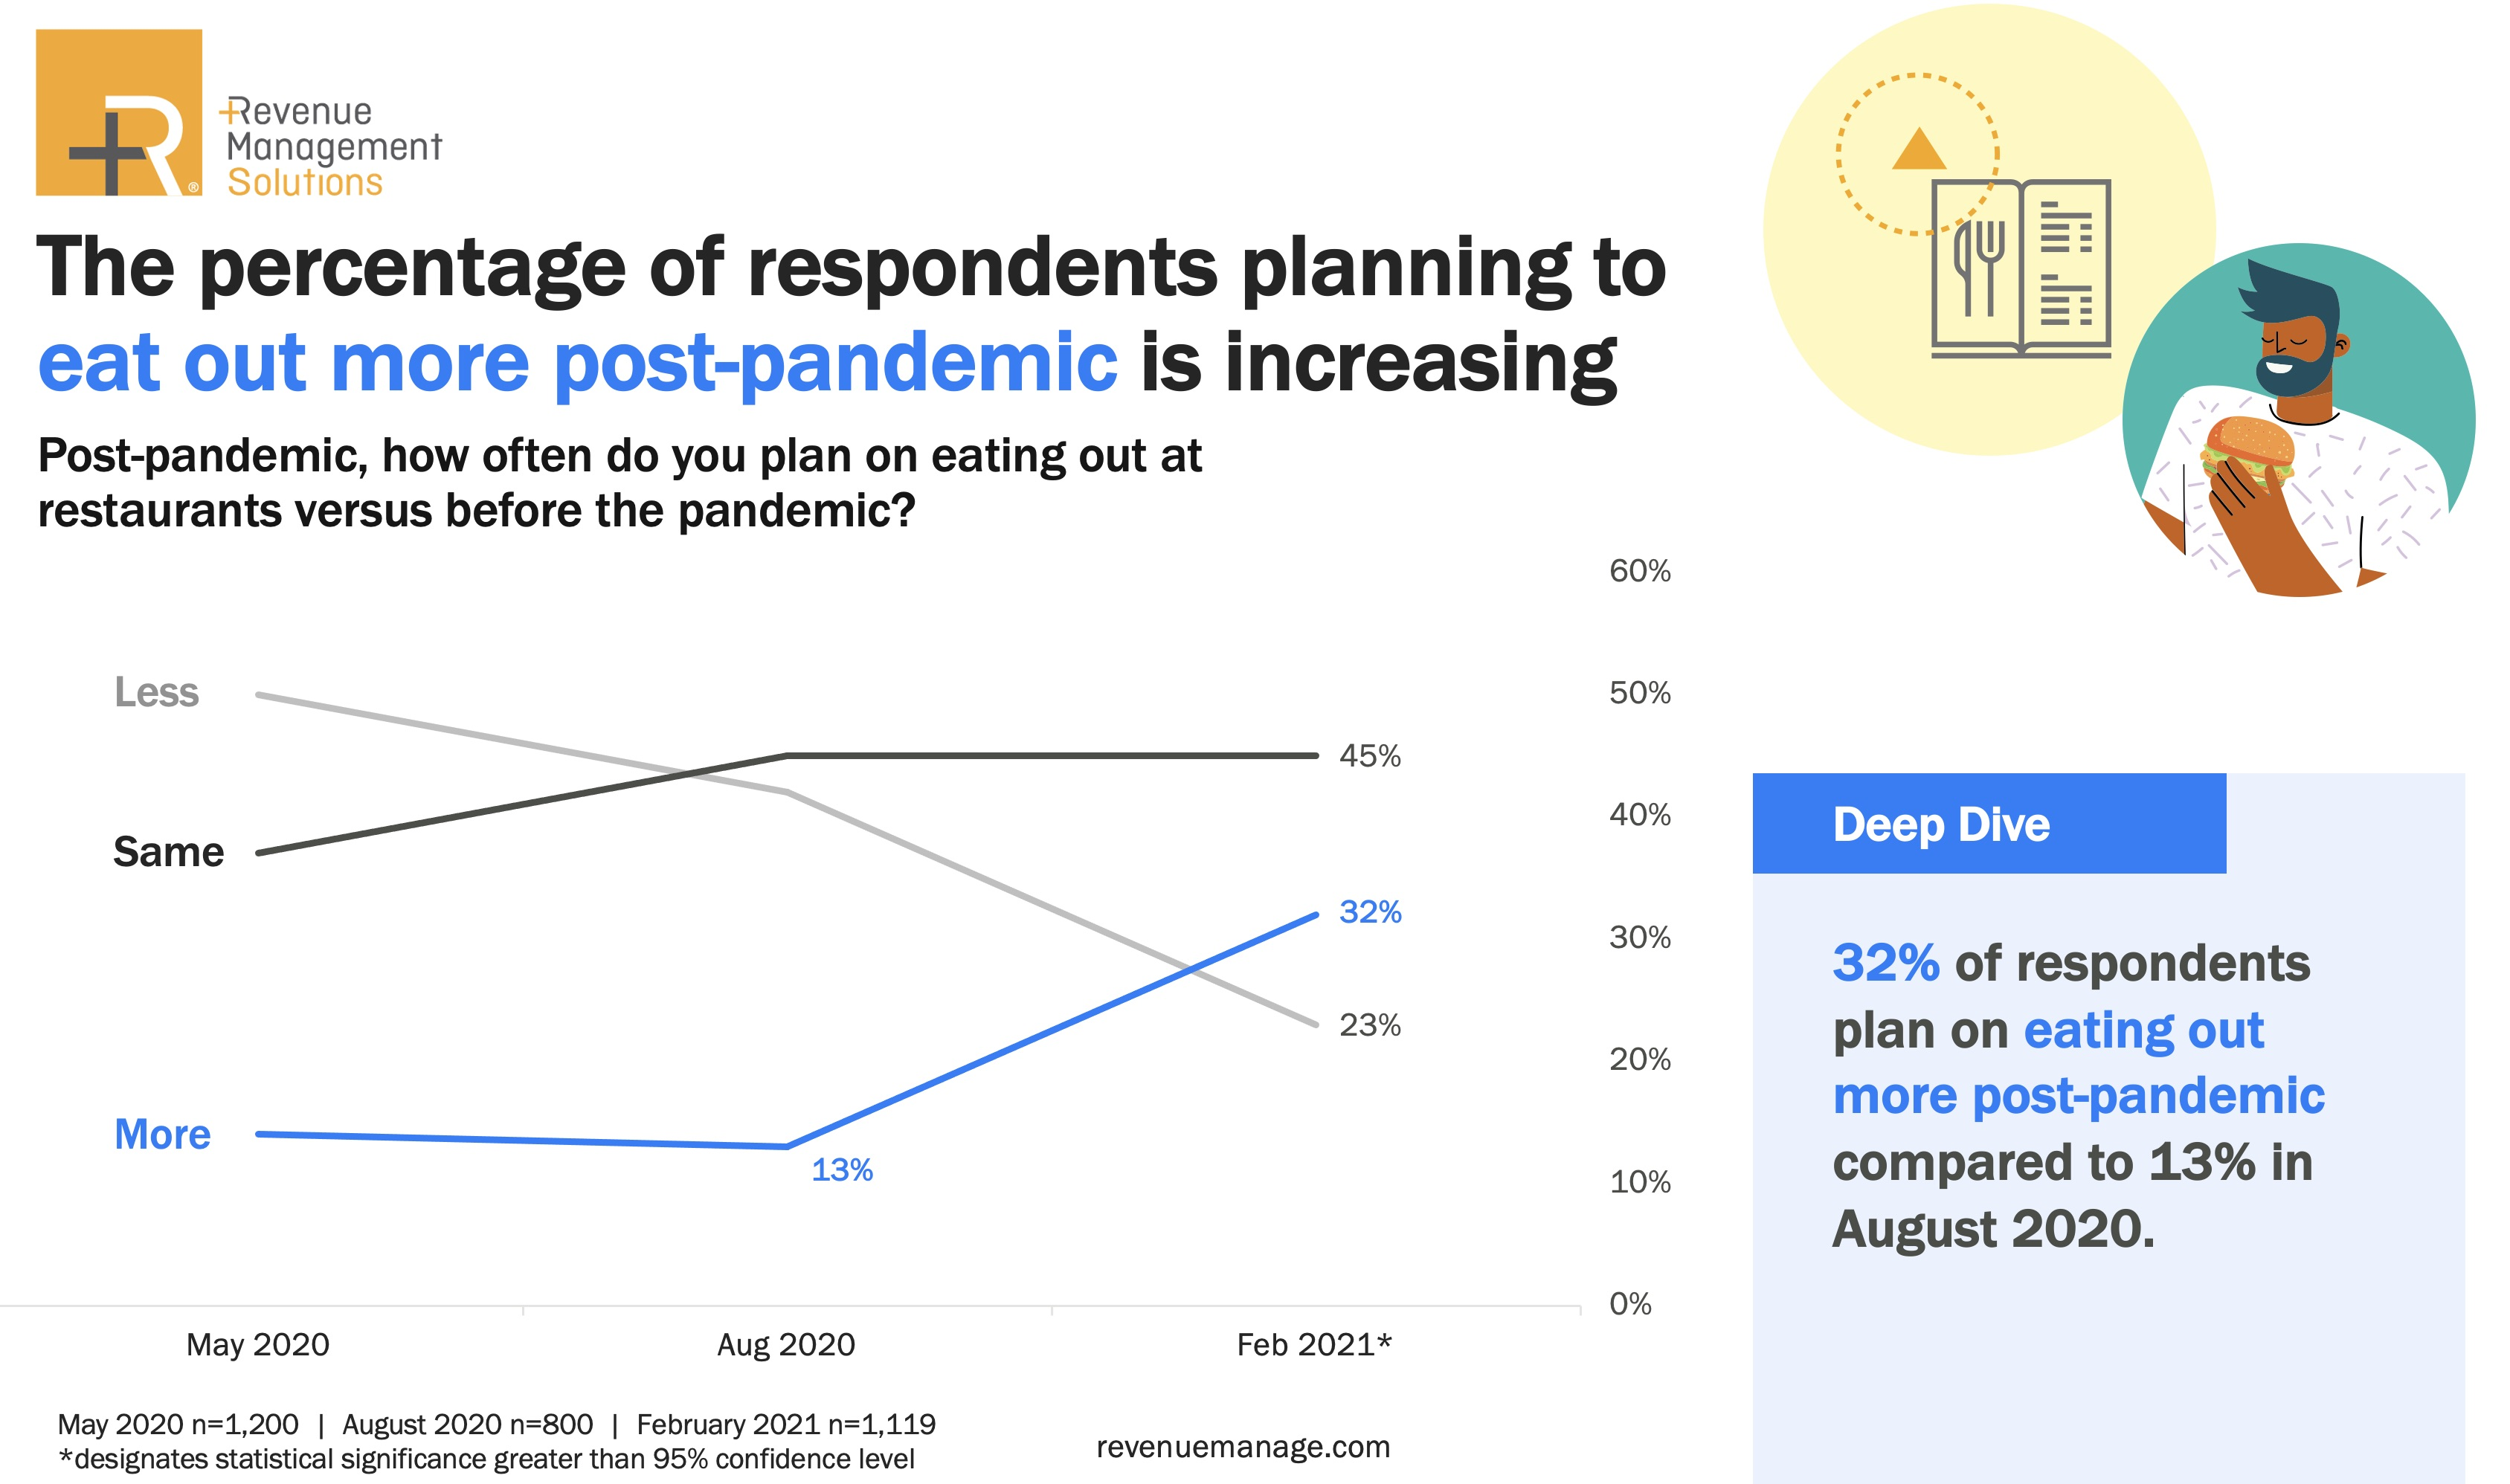 Consumers report increased optimism but a slow road to recovery for restaurants, according to a February 2021 survey by Revenue Management Solutions.